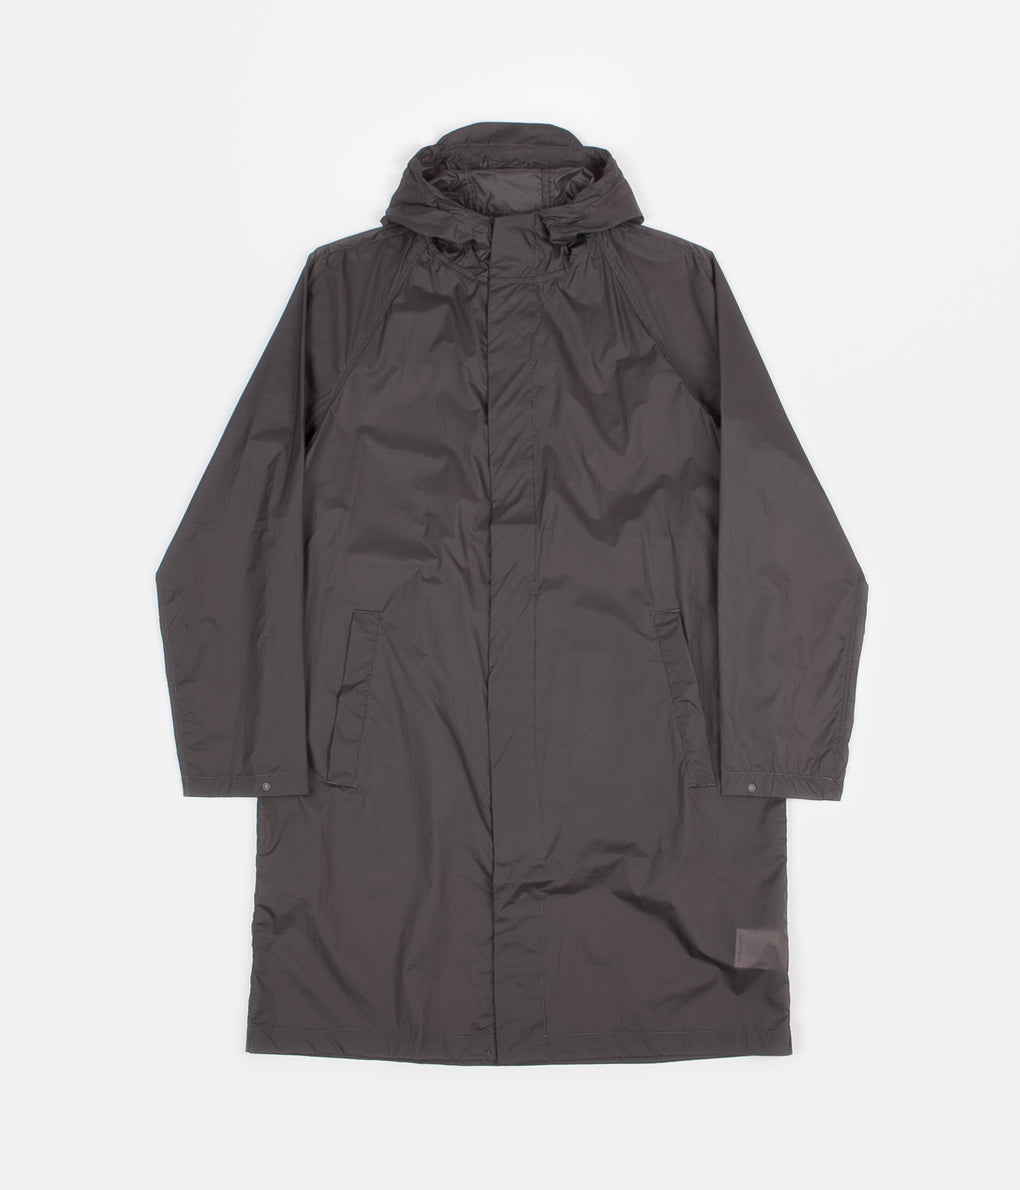 Norse Projects Elias Light Rain Jacket - Magnet Grey